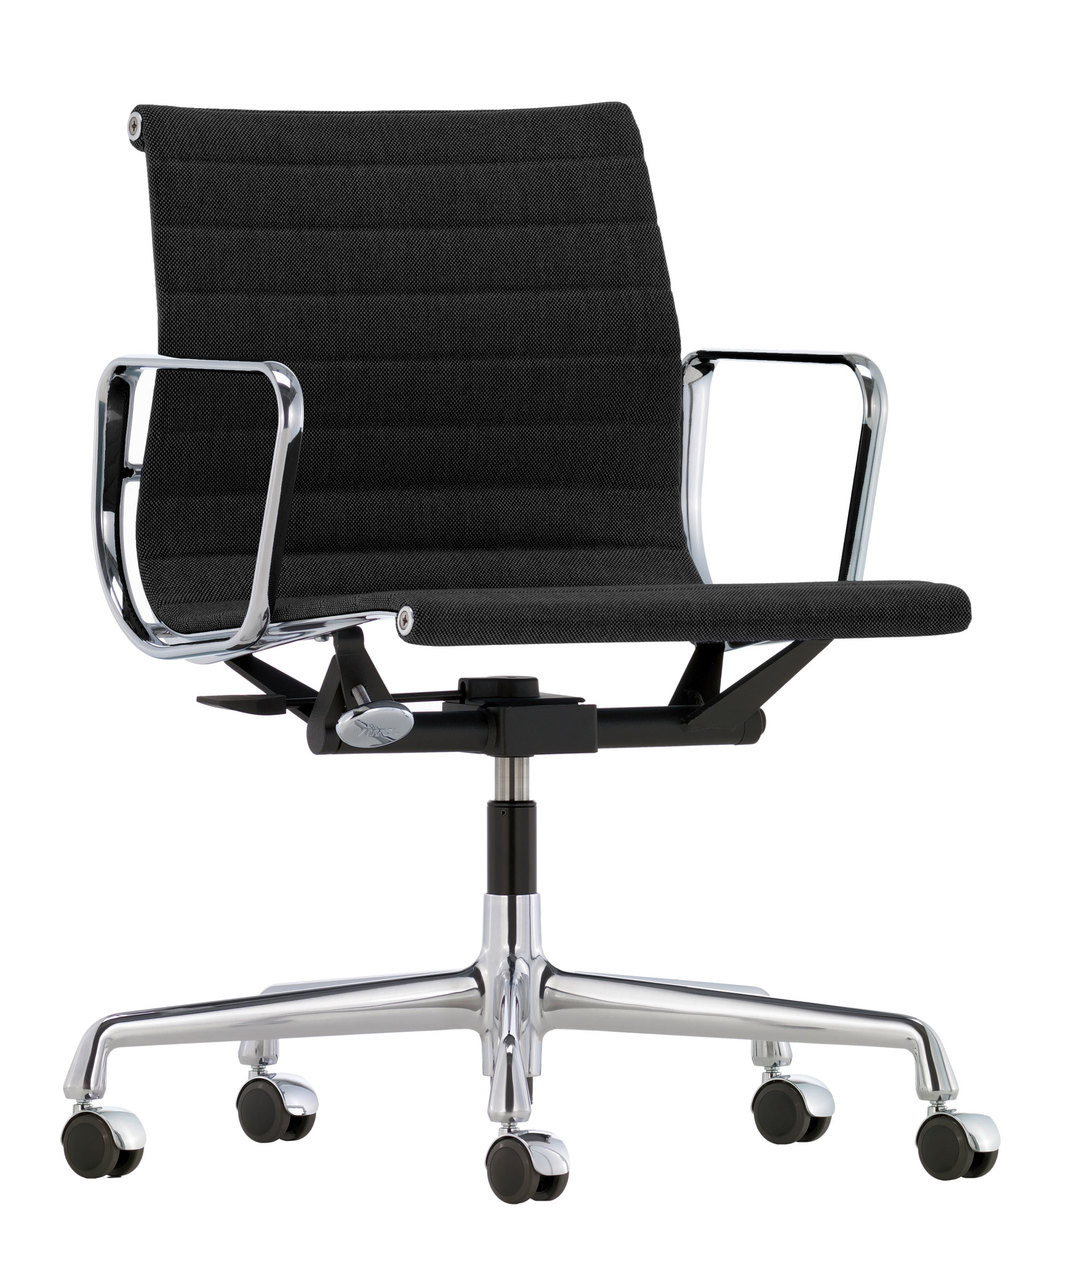 Chair Eames Vitra Eames Aluminium Chair Ea 118 By Charles & Ray Eames